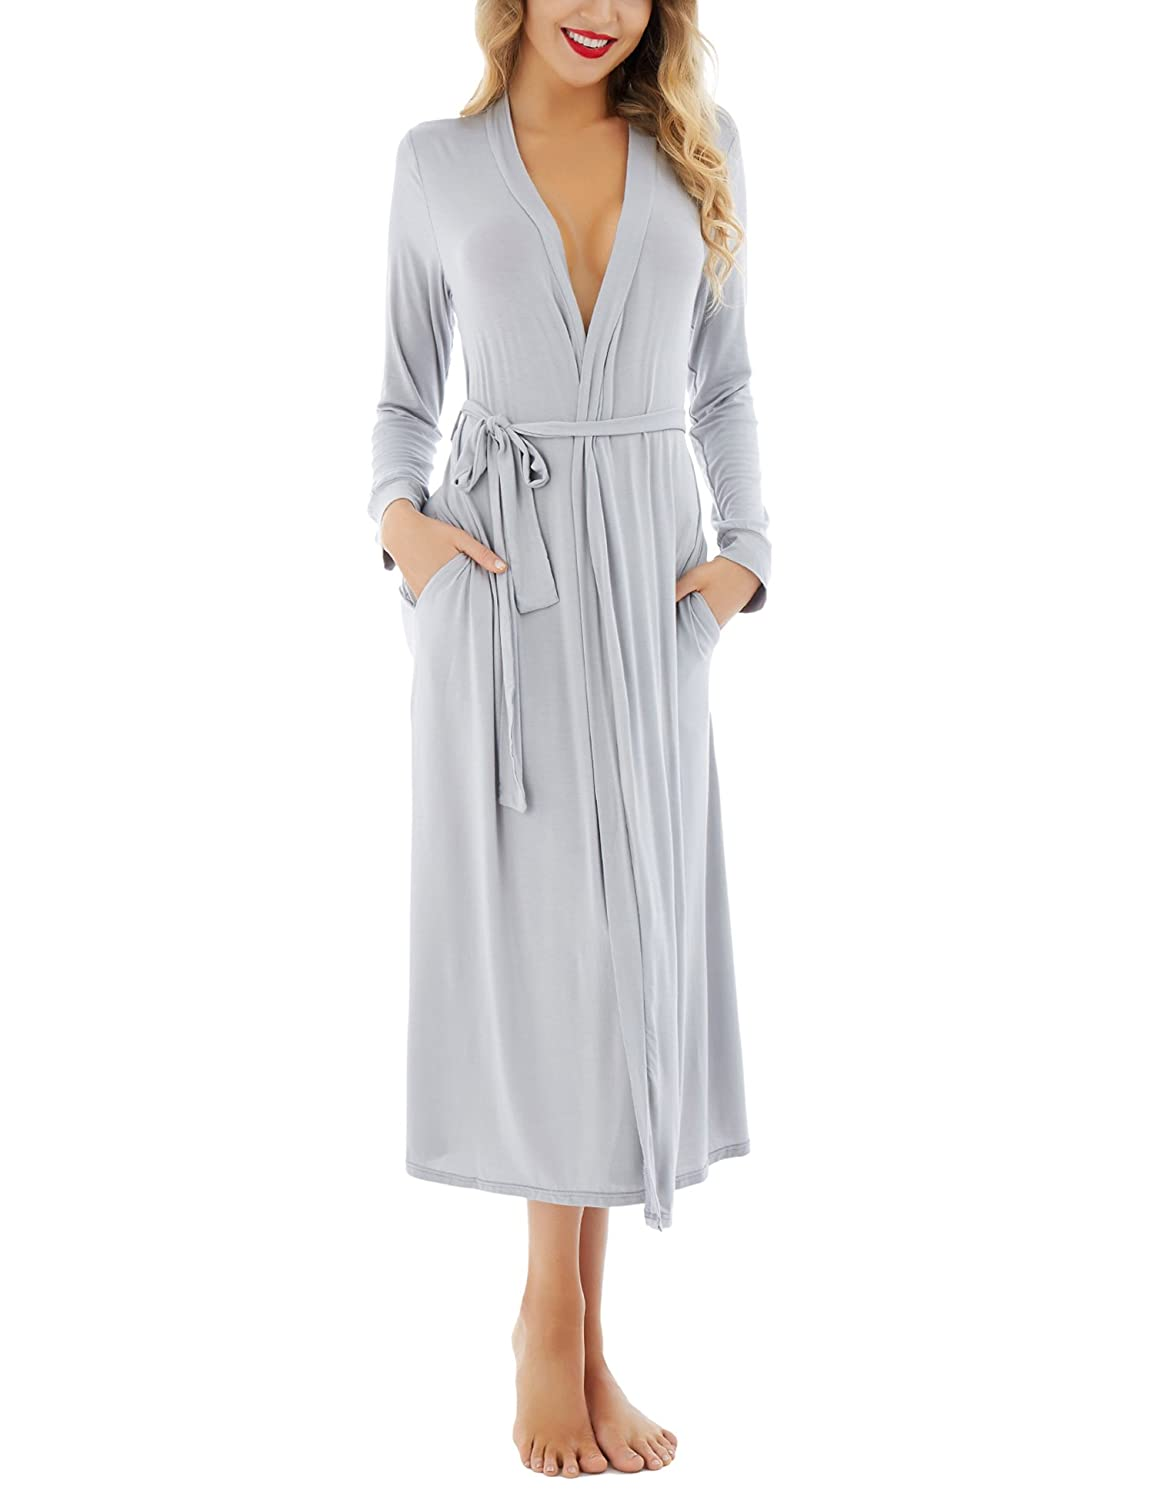 Dromild Women Robe Soft Modal Bathrobe Cotton Kimono Long Sleepwear Lounge wear S-XXL AM7449